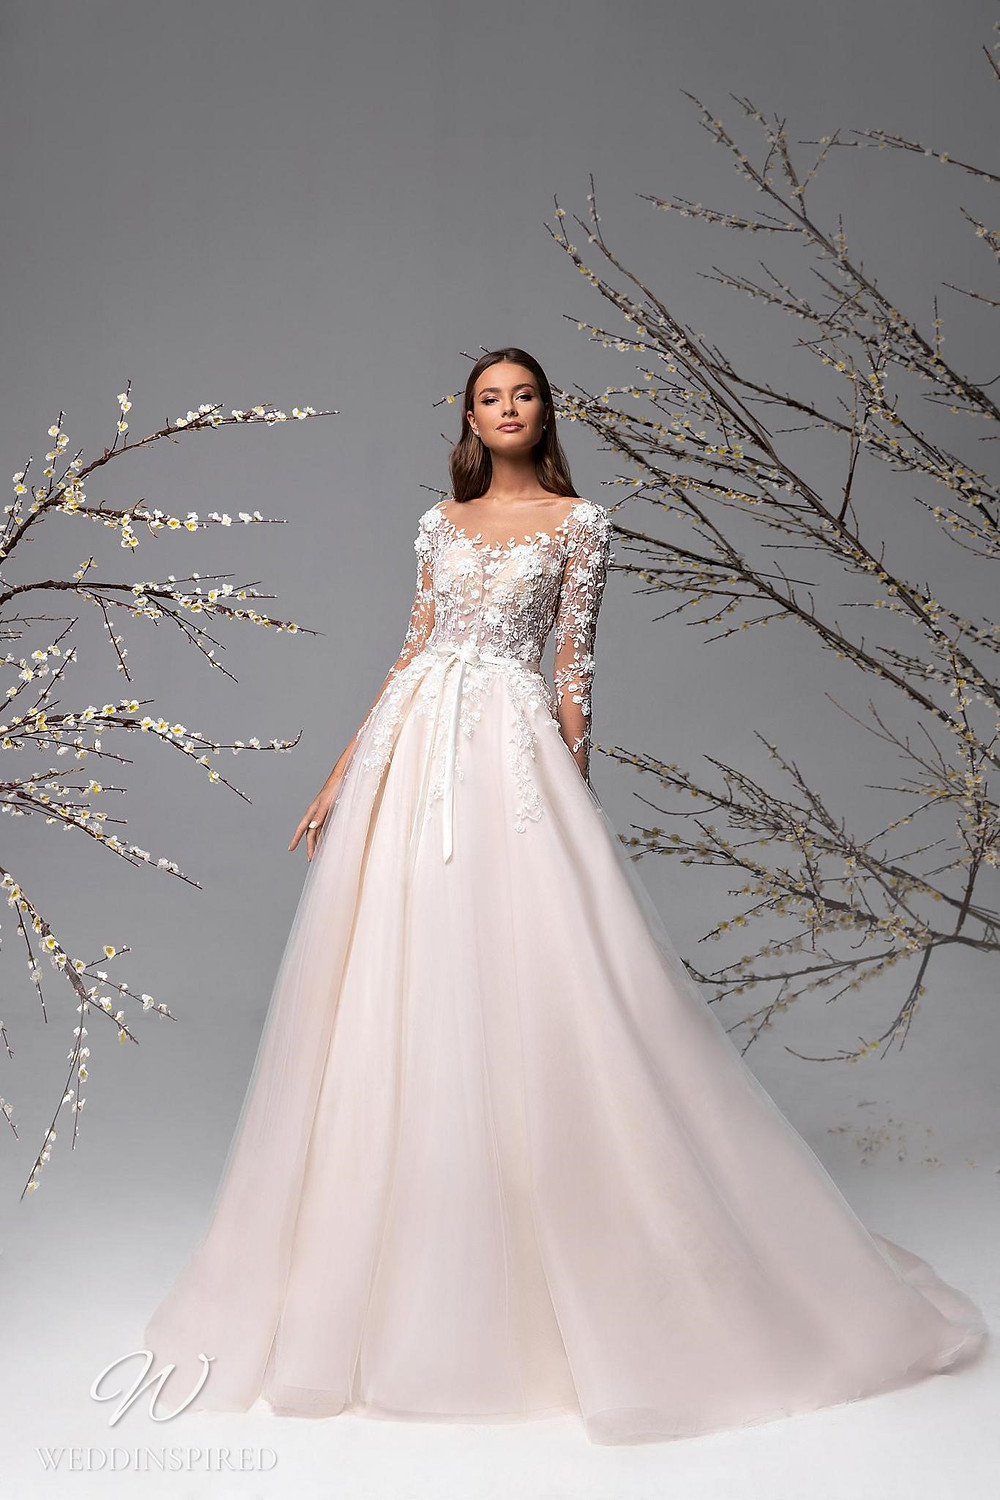 A Ricca Sposa blush lace and tulle A-line wedding dress